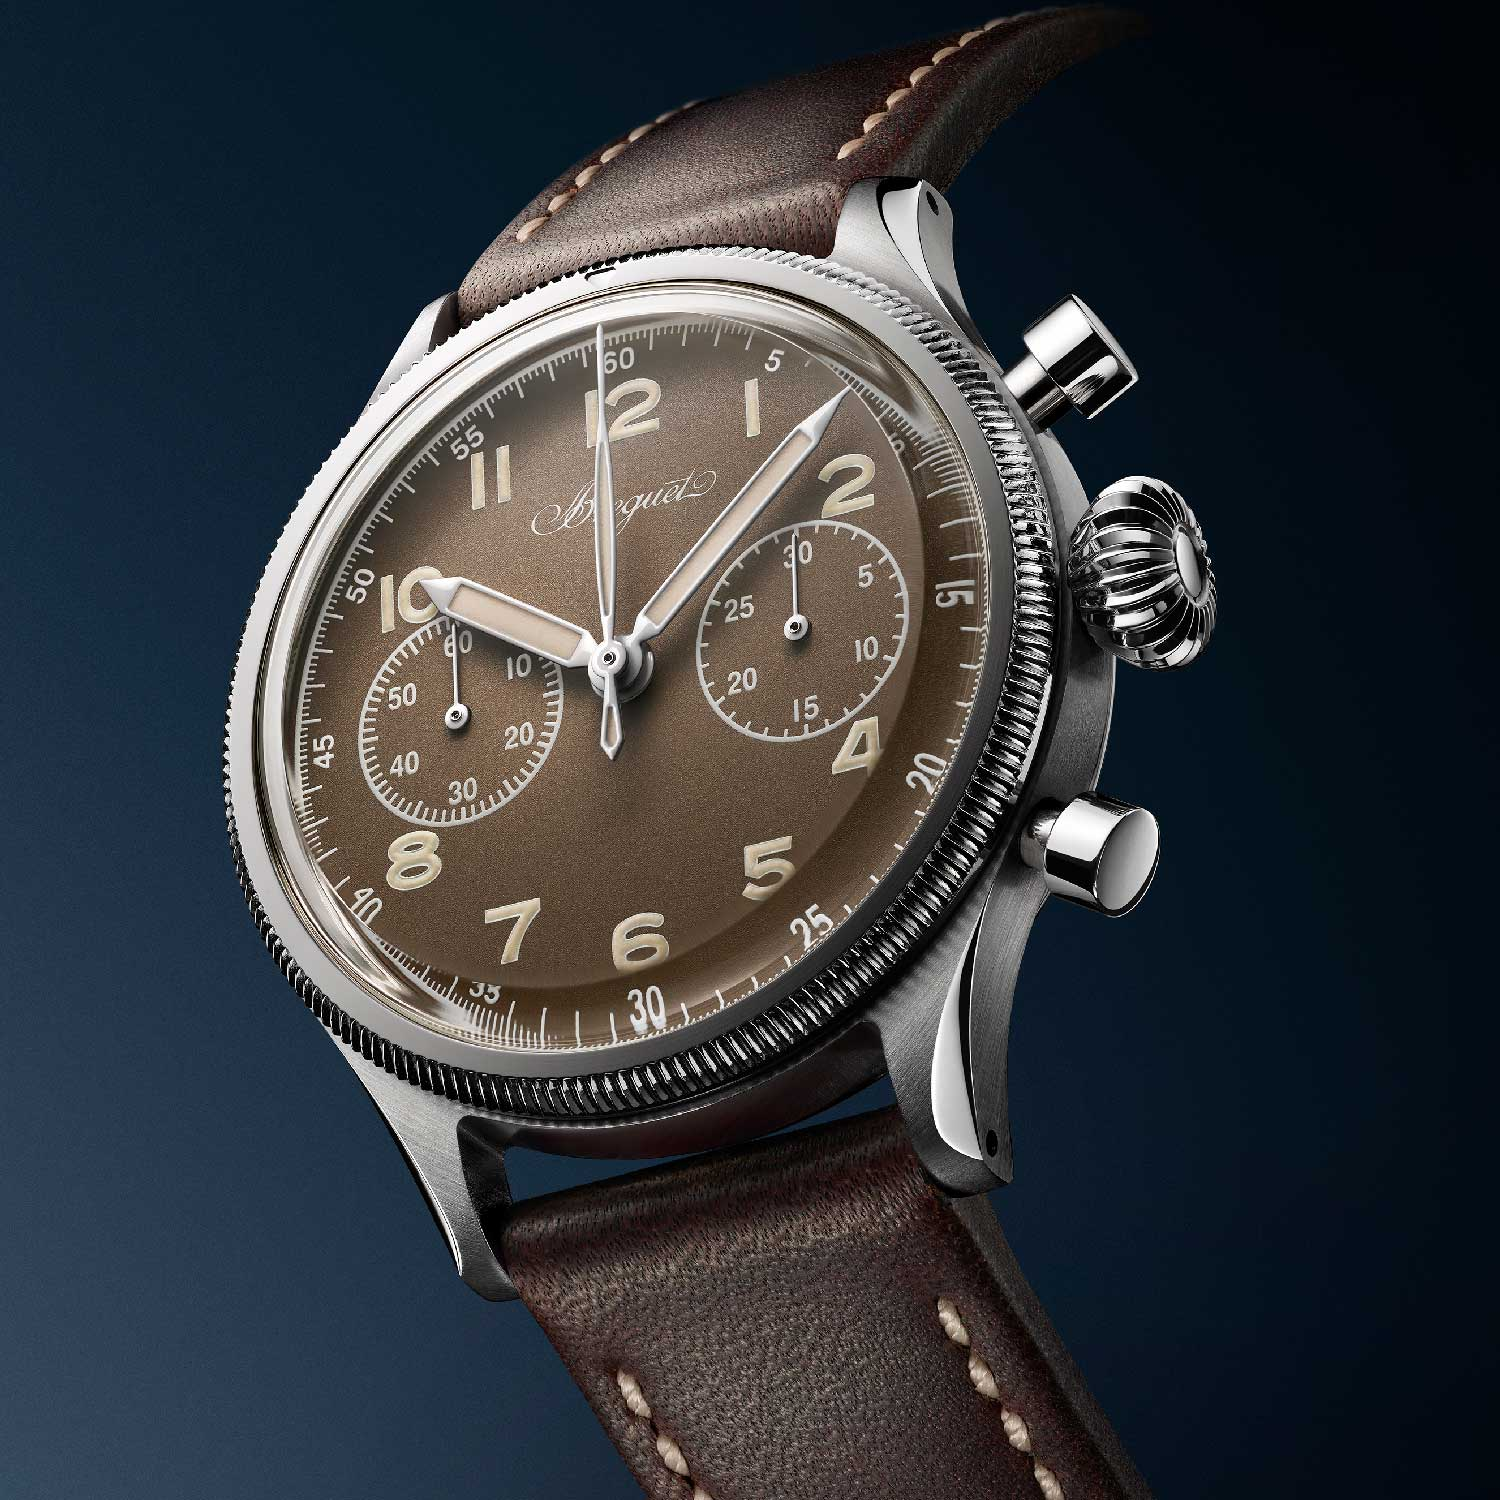 Breguet's unique creation for the Only Watch 2019 which sold for CHF210,000 (Image: Only Watch)